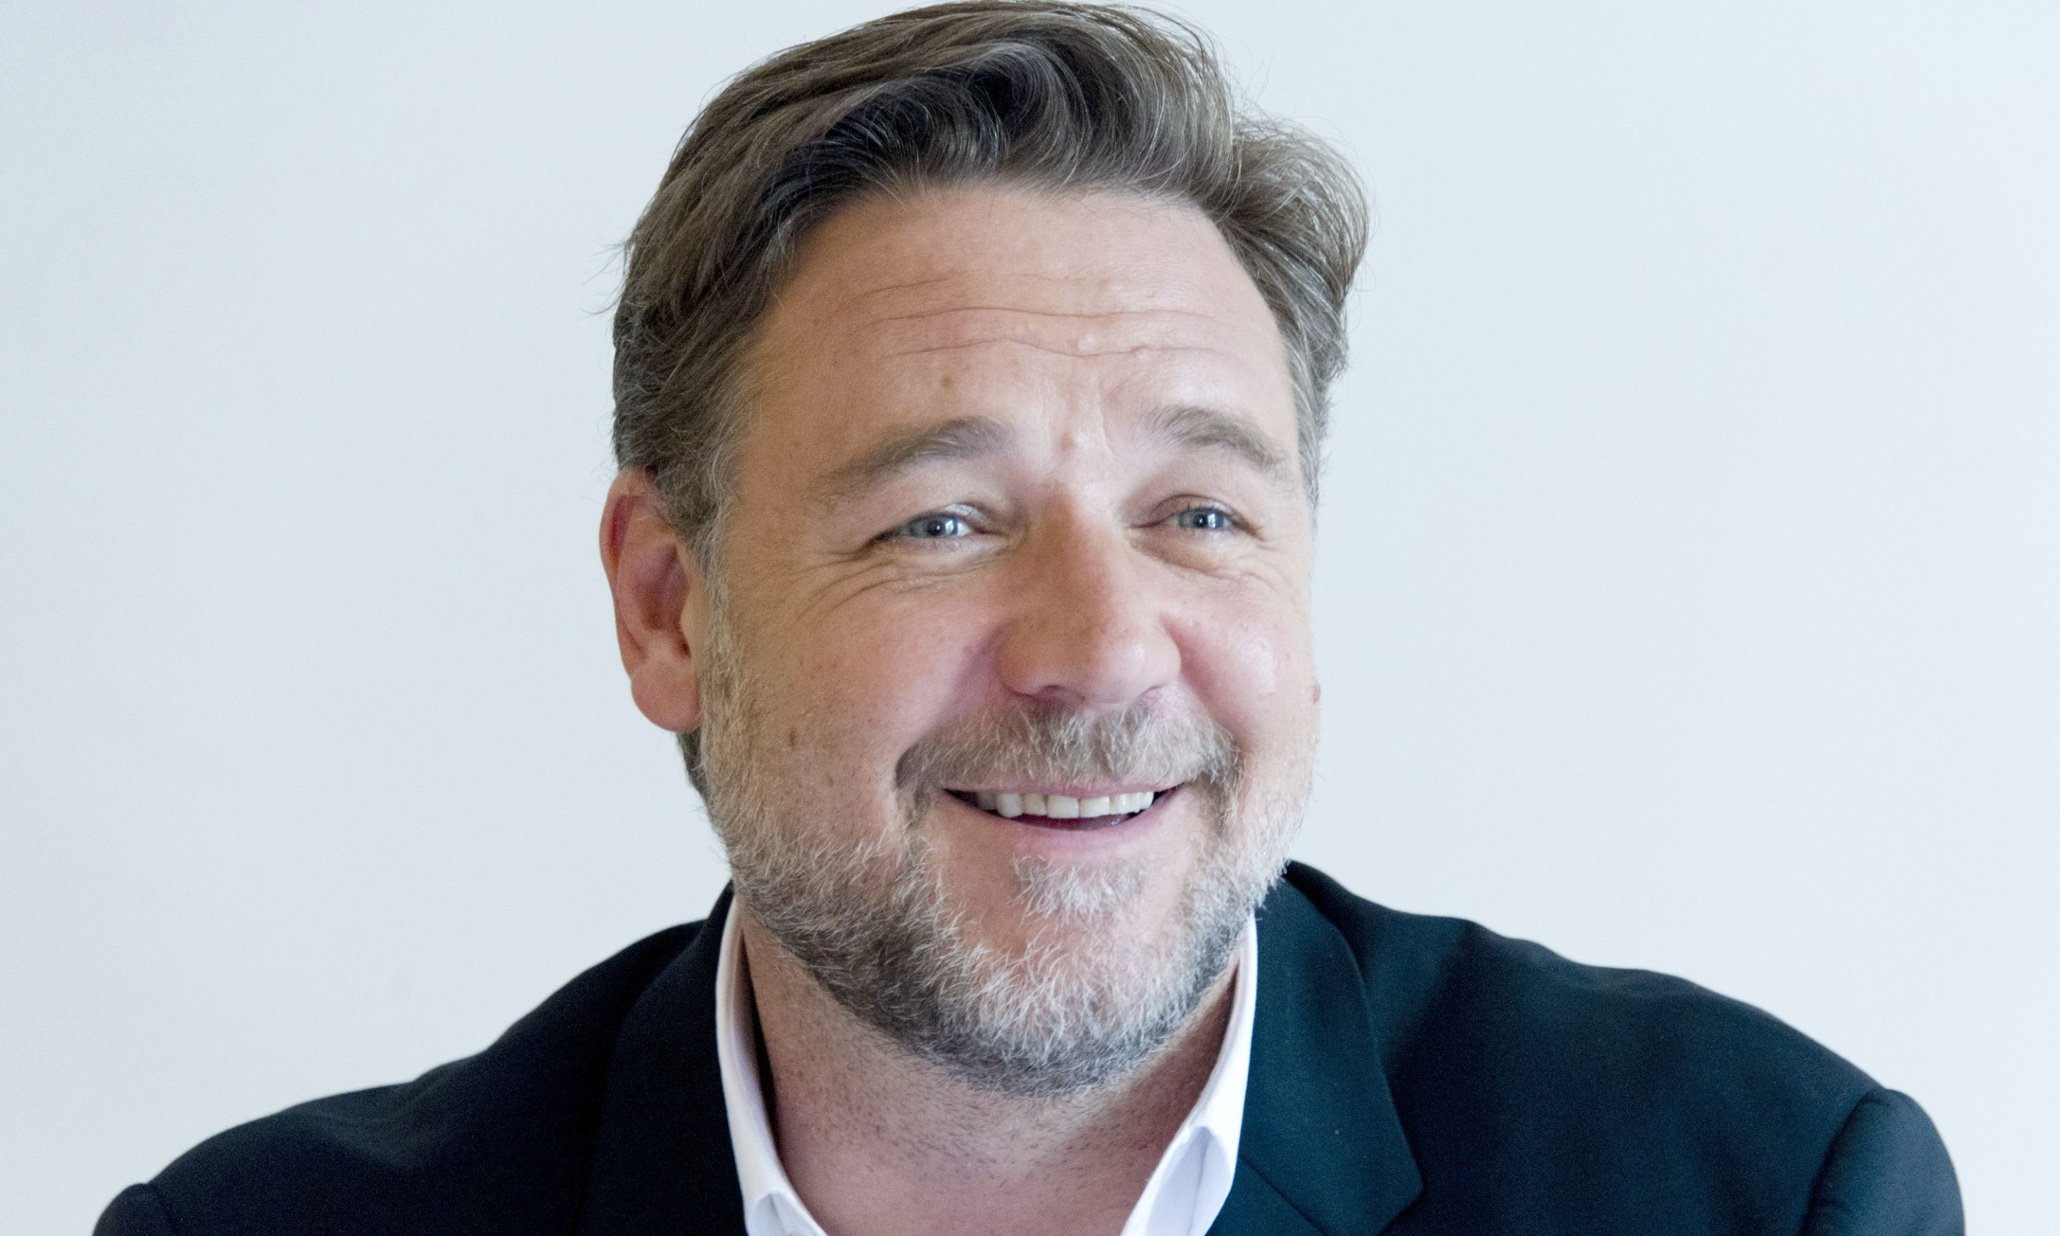 russell crowe 2017russell crowe films, russell crowe movies, russell crowe filmleri, russell crowe young, russell crowe 2016, russell crowe height, russell crowe gif, russell crowe twitter, russell crowe wiki, russell crowe beautiful mind, russell crowe 2017, russell crowe testify, russell crowe tumblr, russell crowe good year, russell crowe cinderella man, russell crowe photoshoot, russell crowe noah, russell crowe imdb, russell crowe filmebi, russell crowe vse filmi